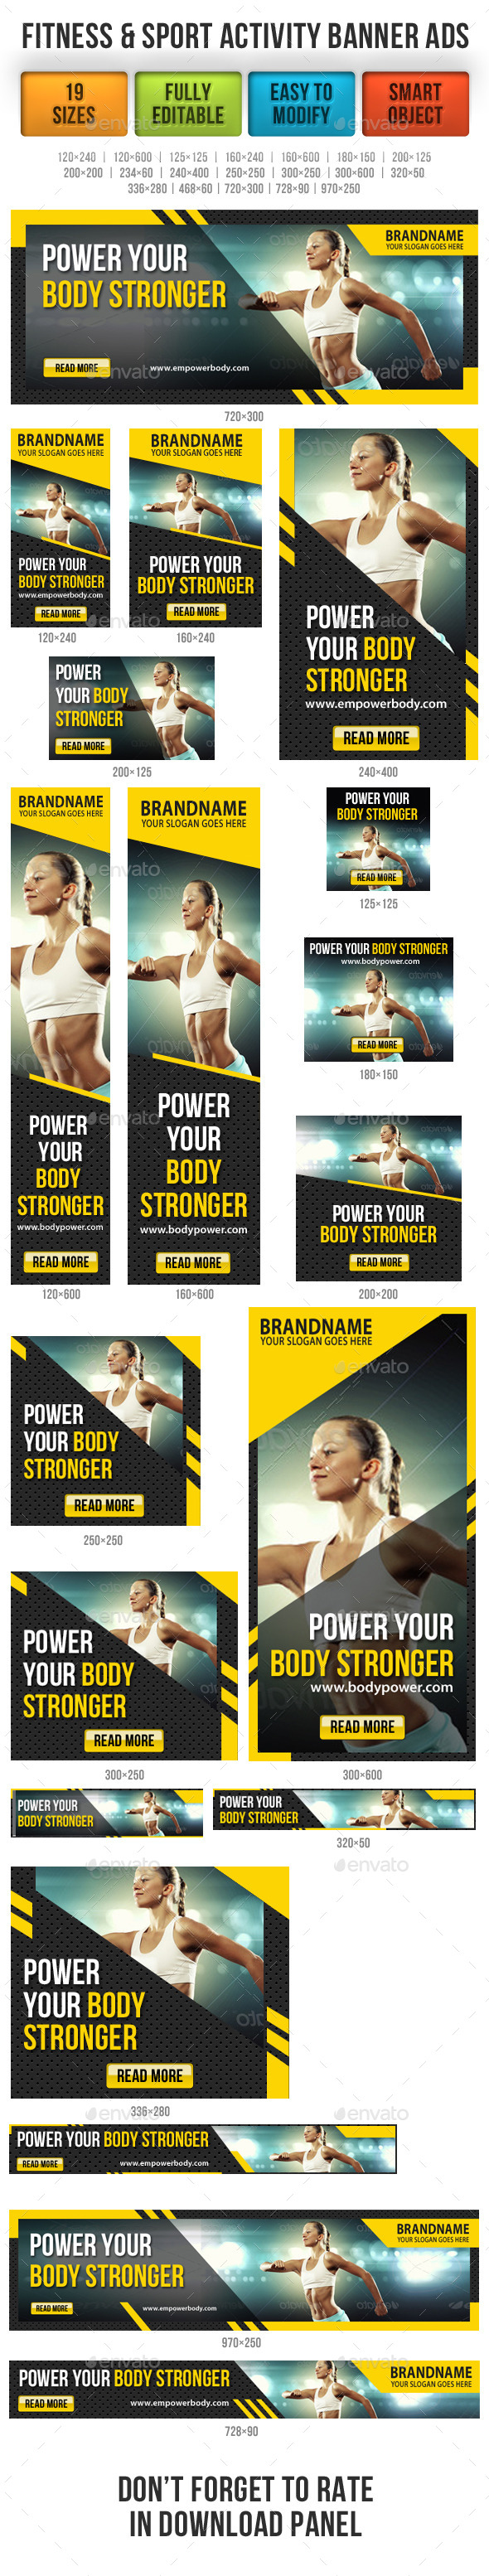 Fitness & Sport Activity Banner Ads - Banners & Ads Web Elements